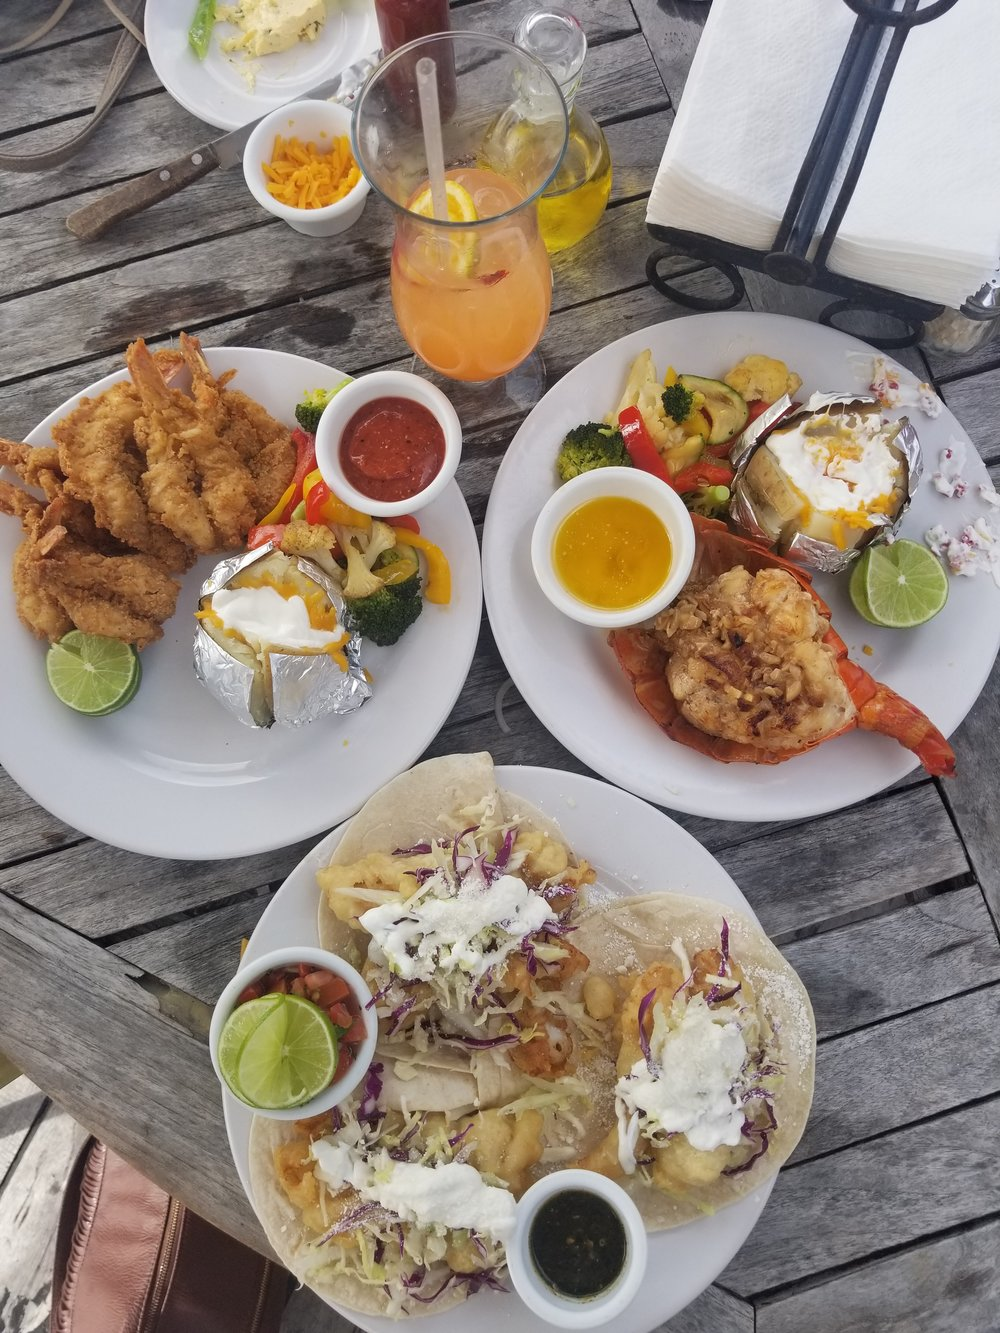 Photo Taken By Me : One of my favorite meals in Cancun. Brittany and I decided to share a few plates. We had fish tacos, lobster tail and fried shrimp.